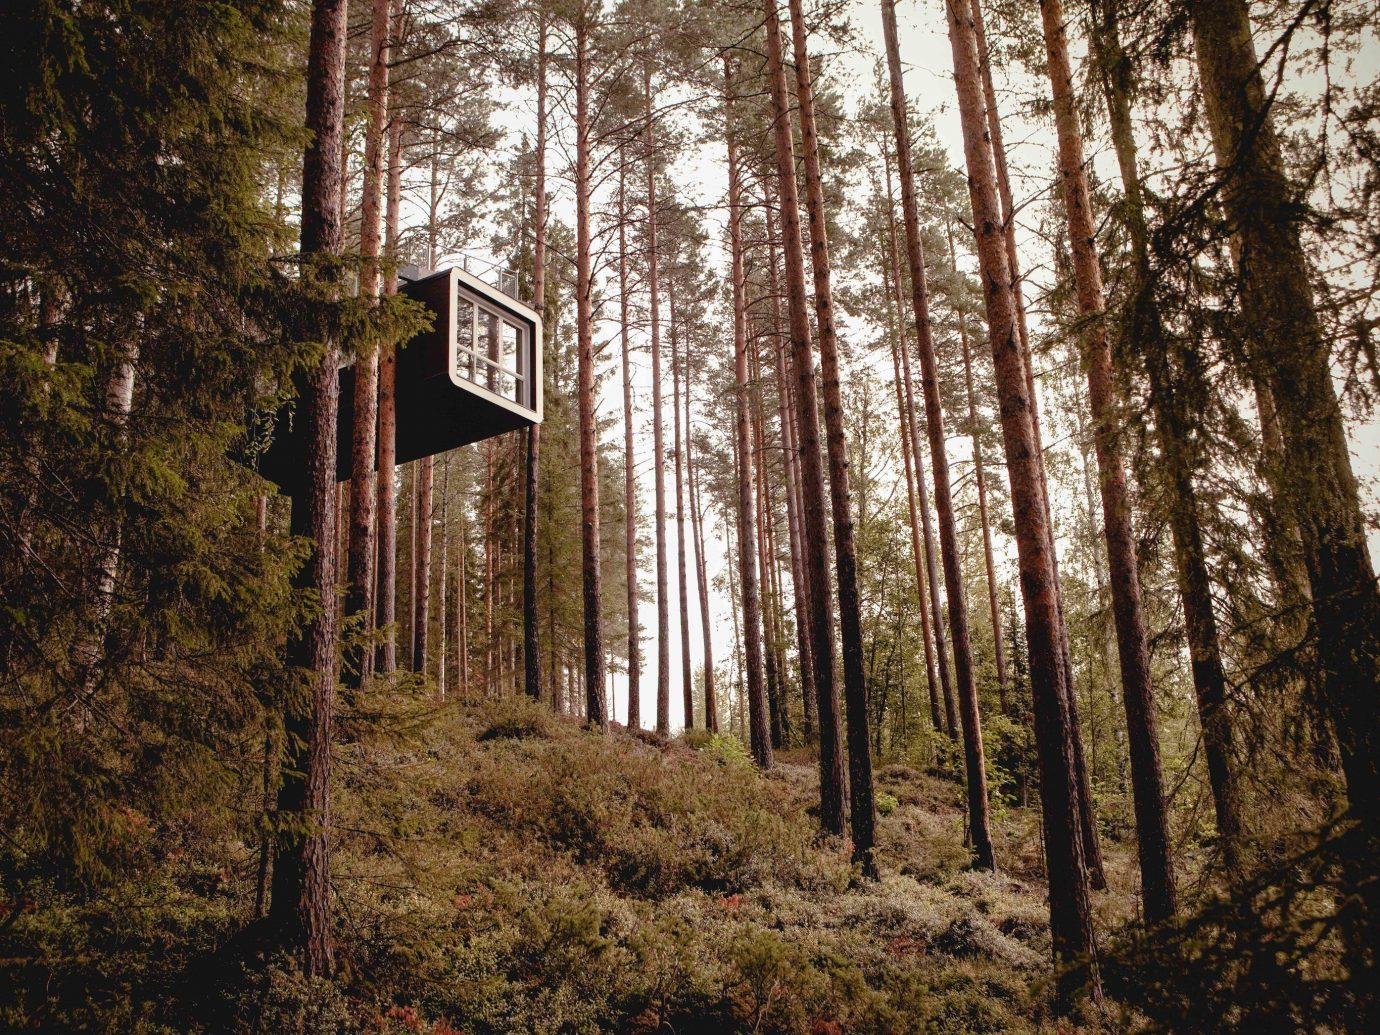 Boutique Hotels Sweden tree outdoor Nature woodland Forest woody plant path leaf plant wood sunlight old growth forest wooded biome autumn temperate coniferous forest grove spruce fir forest temperate broadleaf and mixed forest house landscape branch state park area